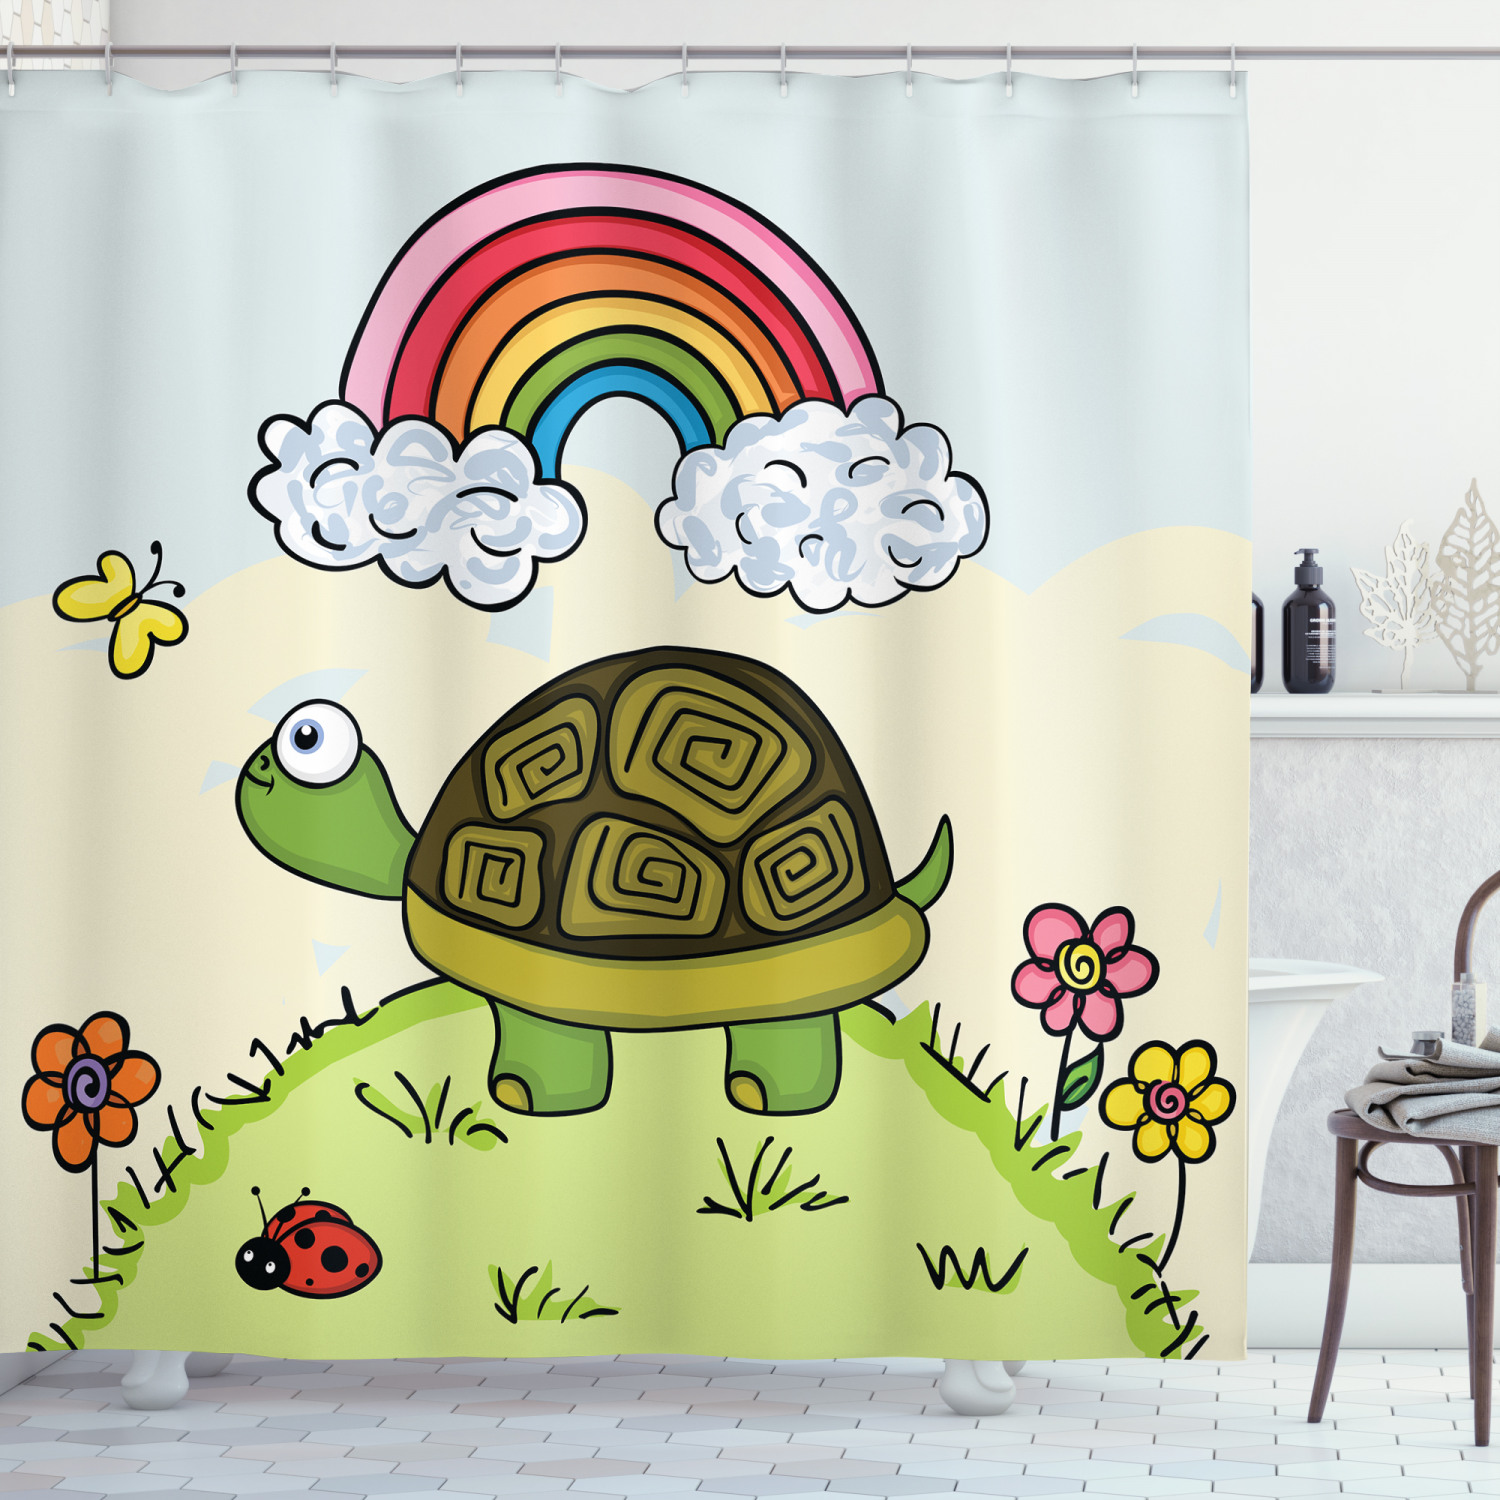 turtle shower curtain cartoon animal looking at a butterfly on hill spring season colorful nursery doodle fabric bathroom set with hooks 69w x 70l